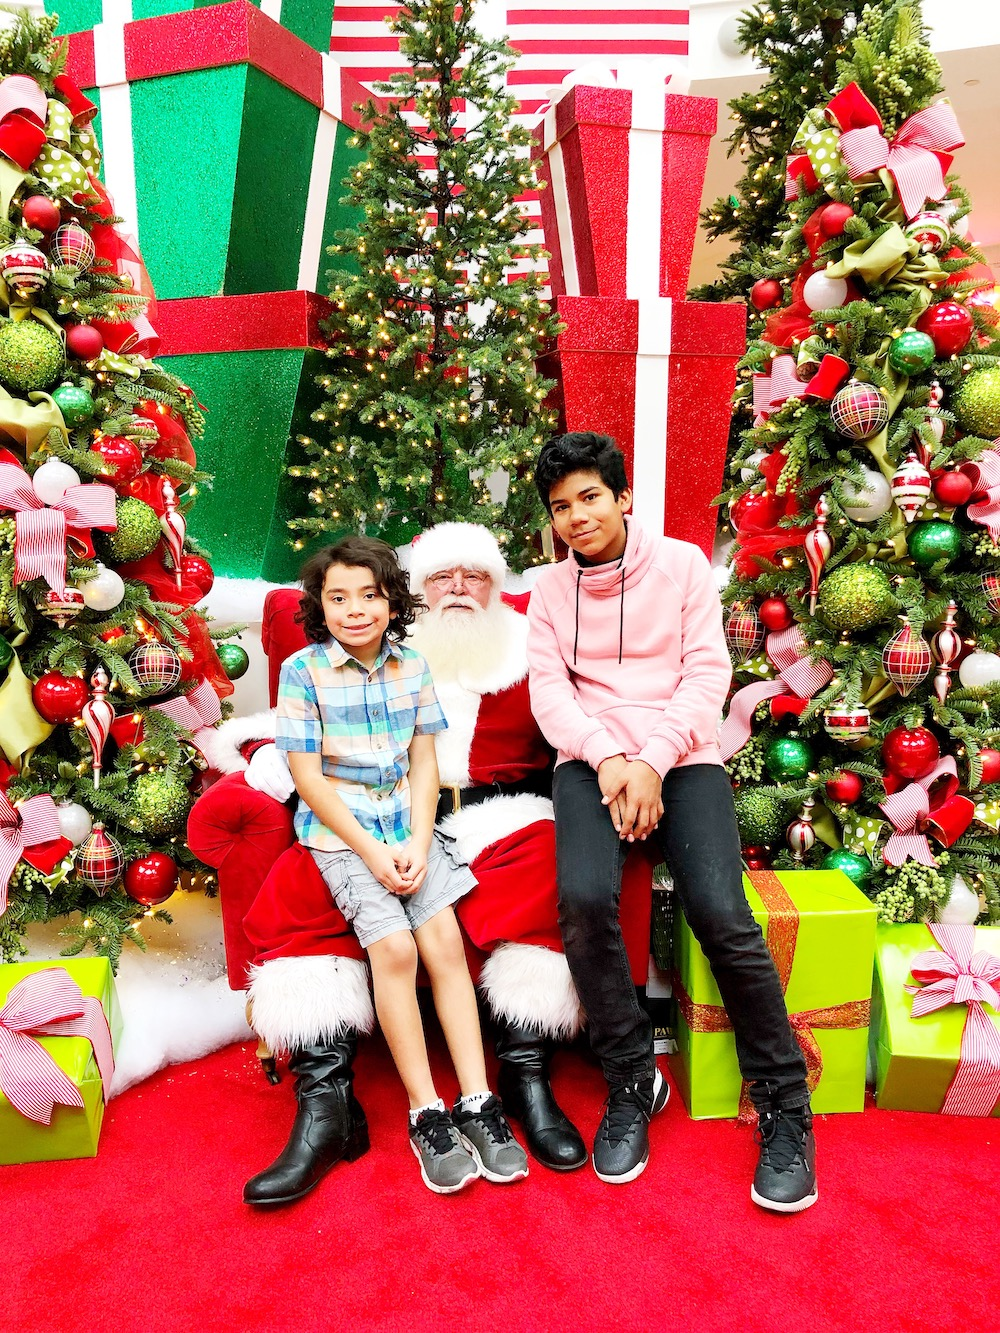 Holiday shopping and visiting Santa at MainPlace Mall in Santa Ana | LivingMiVidaLoca.com | #LivingMiVidaLoca #SantaAna #ShopMainPlace #ShopMainPlaceMall #MainPlace #KidBlogger